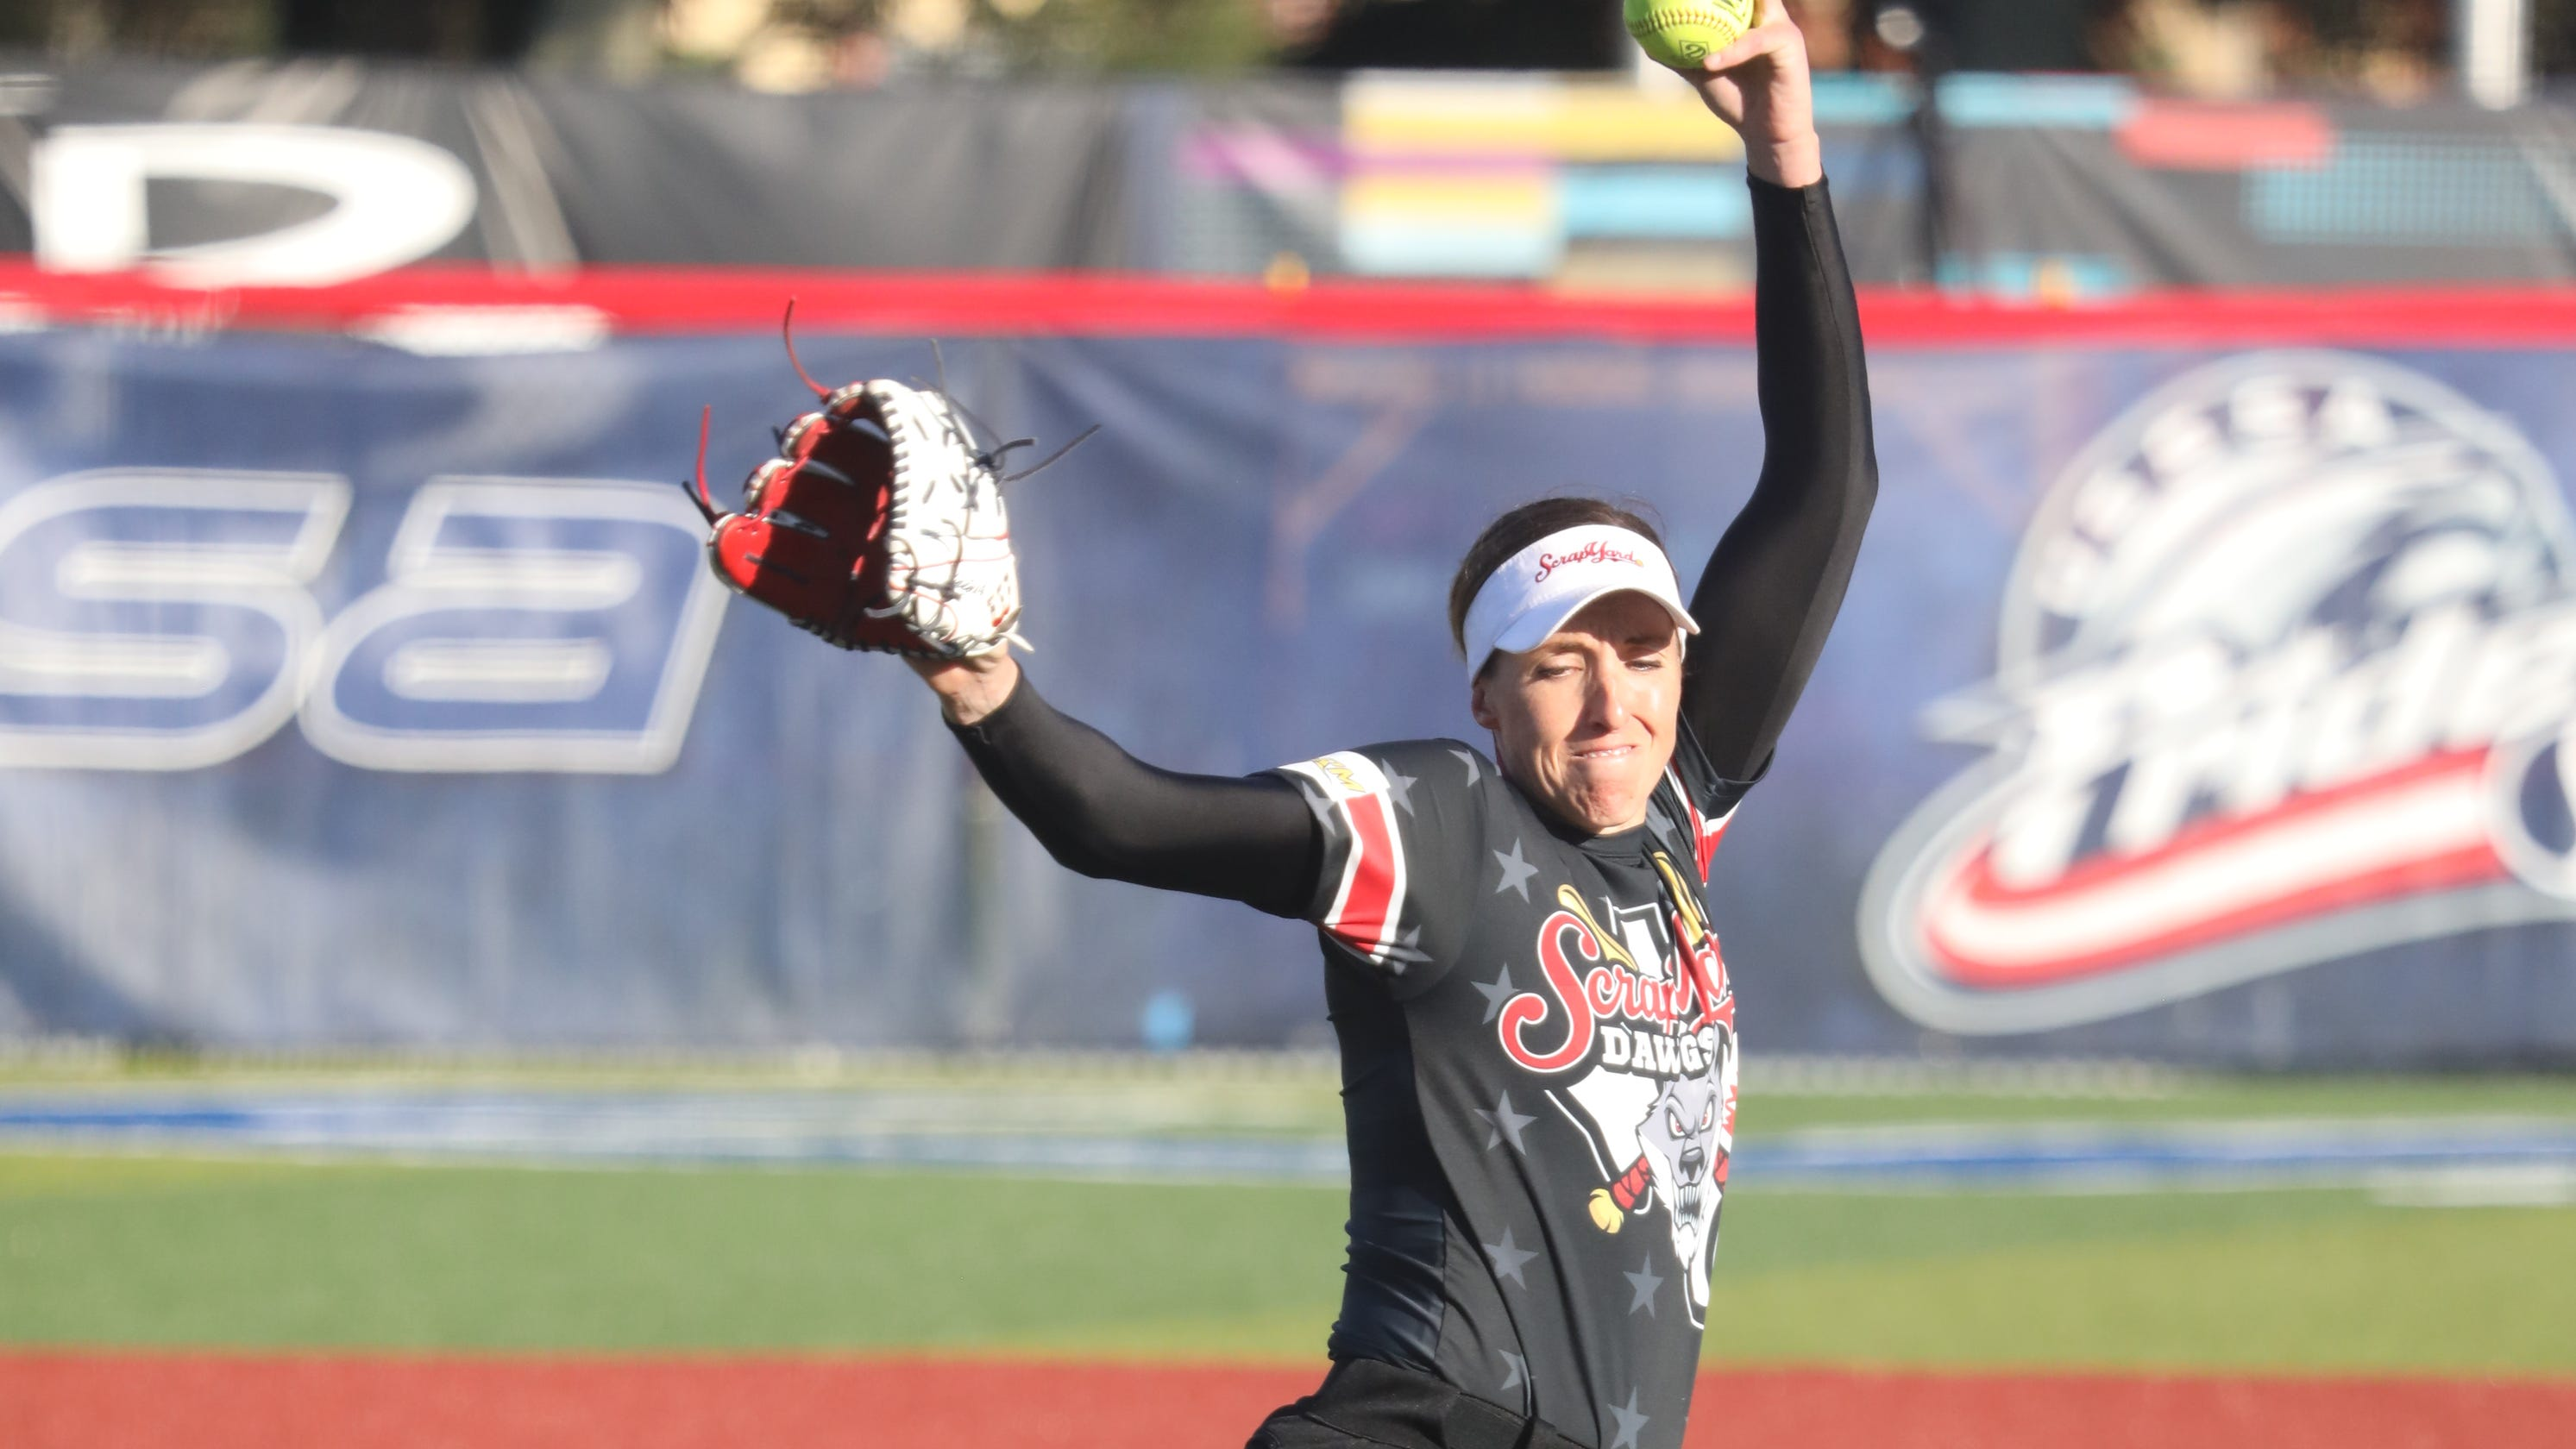 Pro fast-pitch softball makes its return in Florida